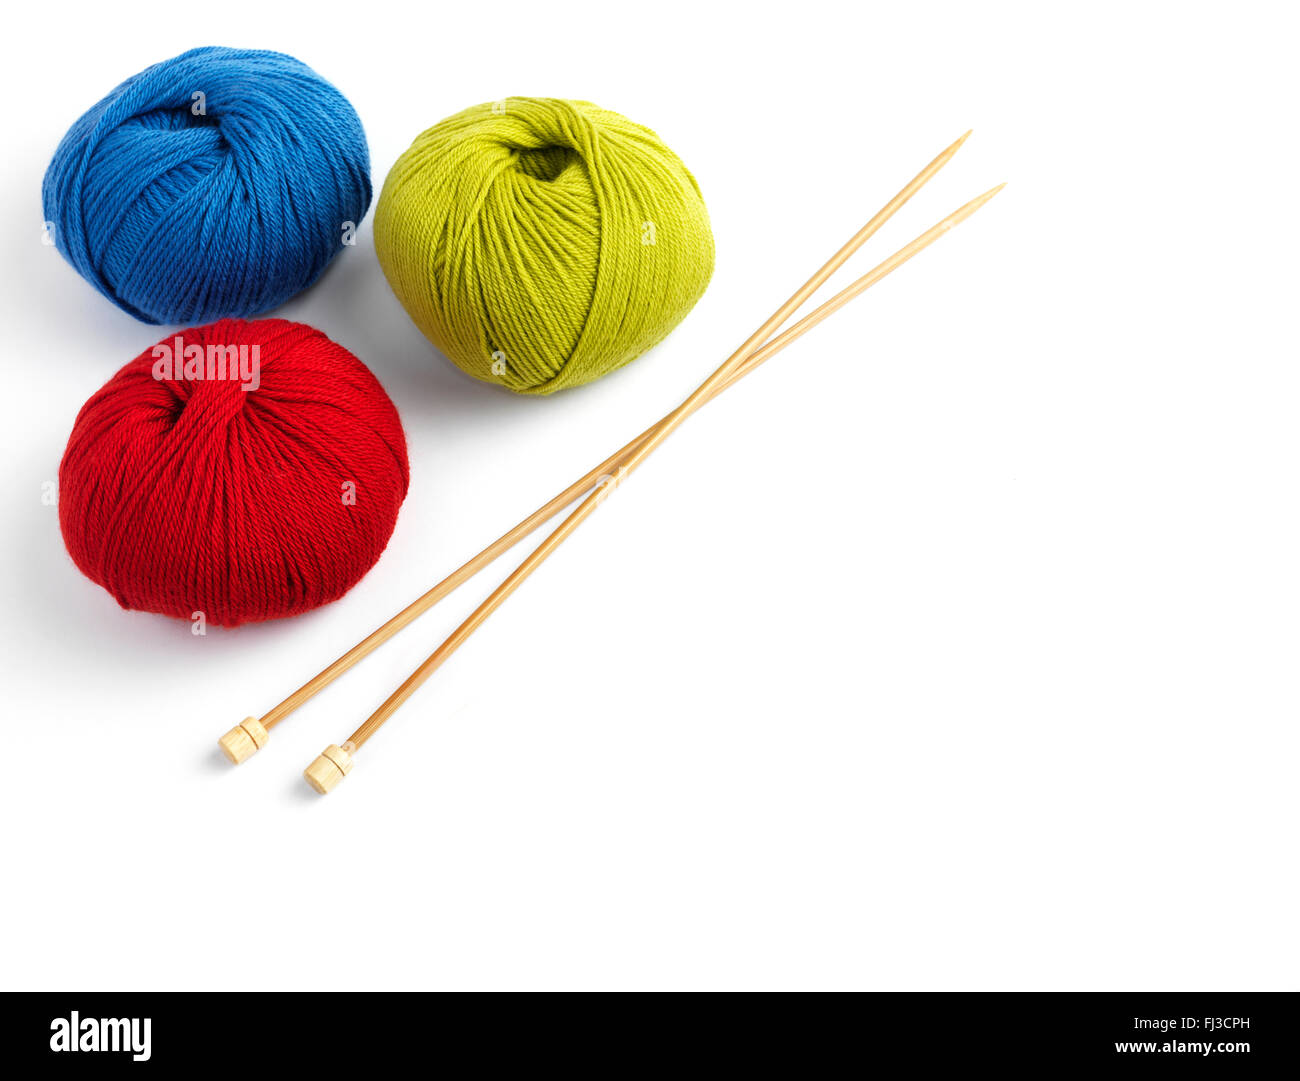 Balls of wool and a knitting needle - Stock Image